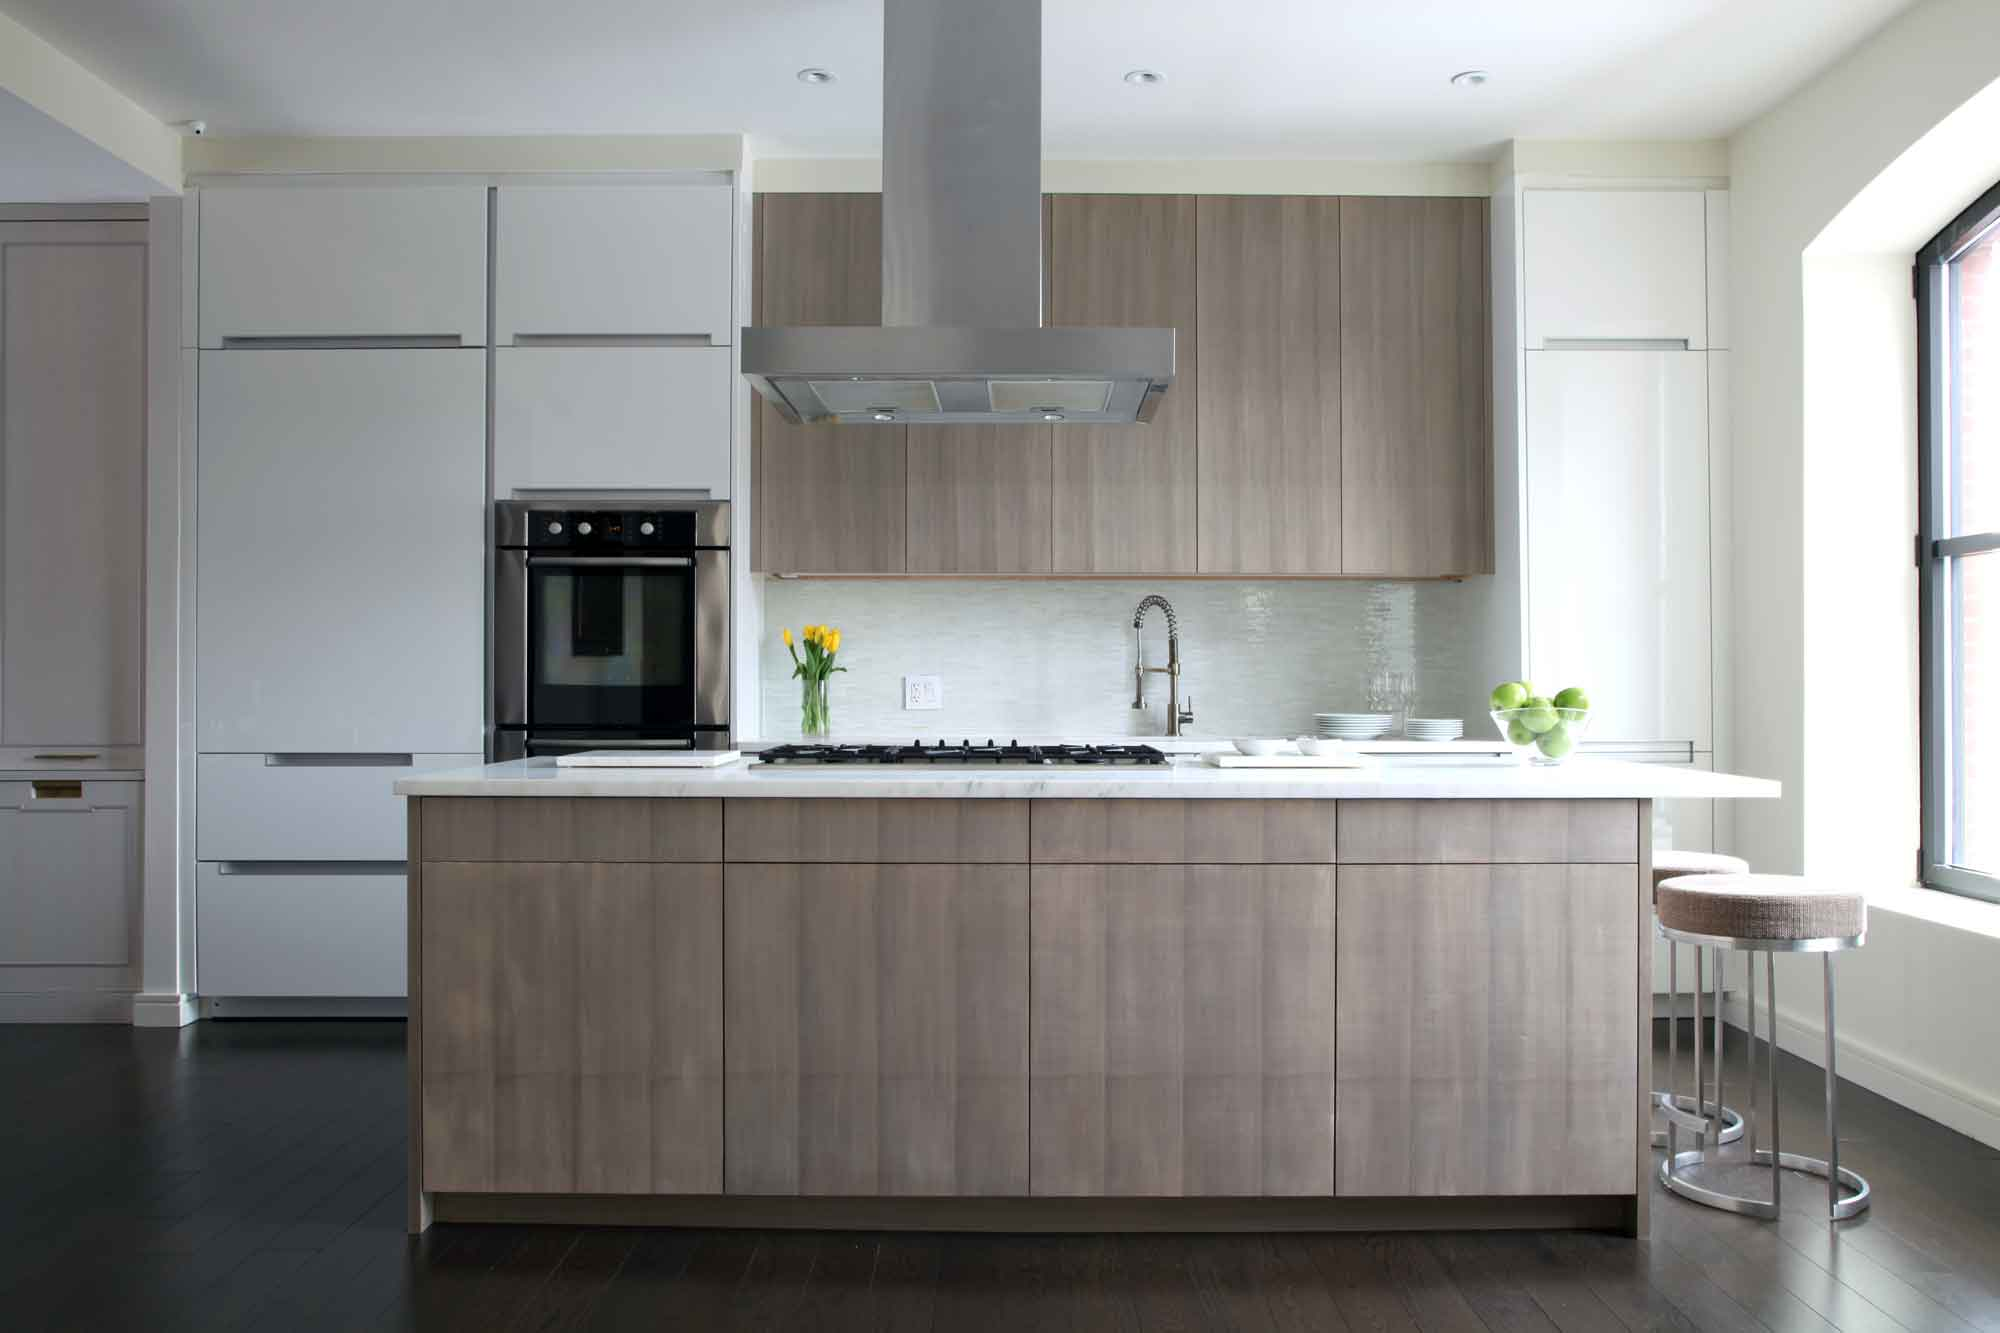 brooke moorhead design kitchen tribeca chic